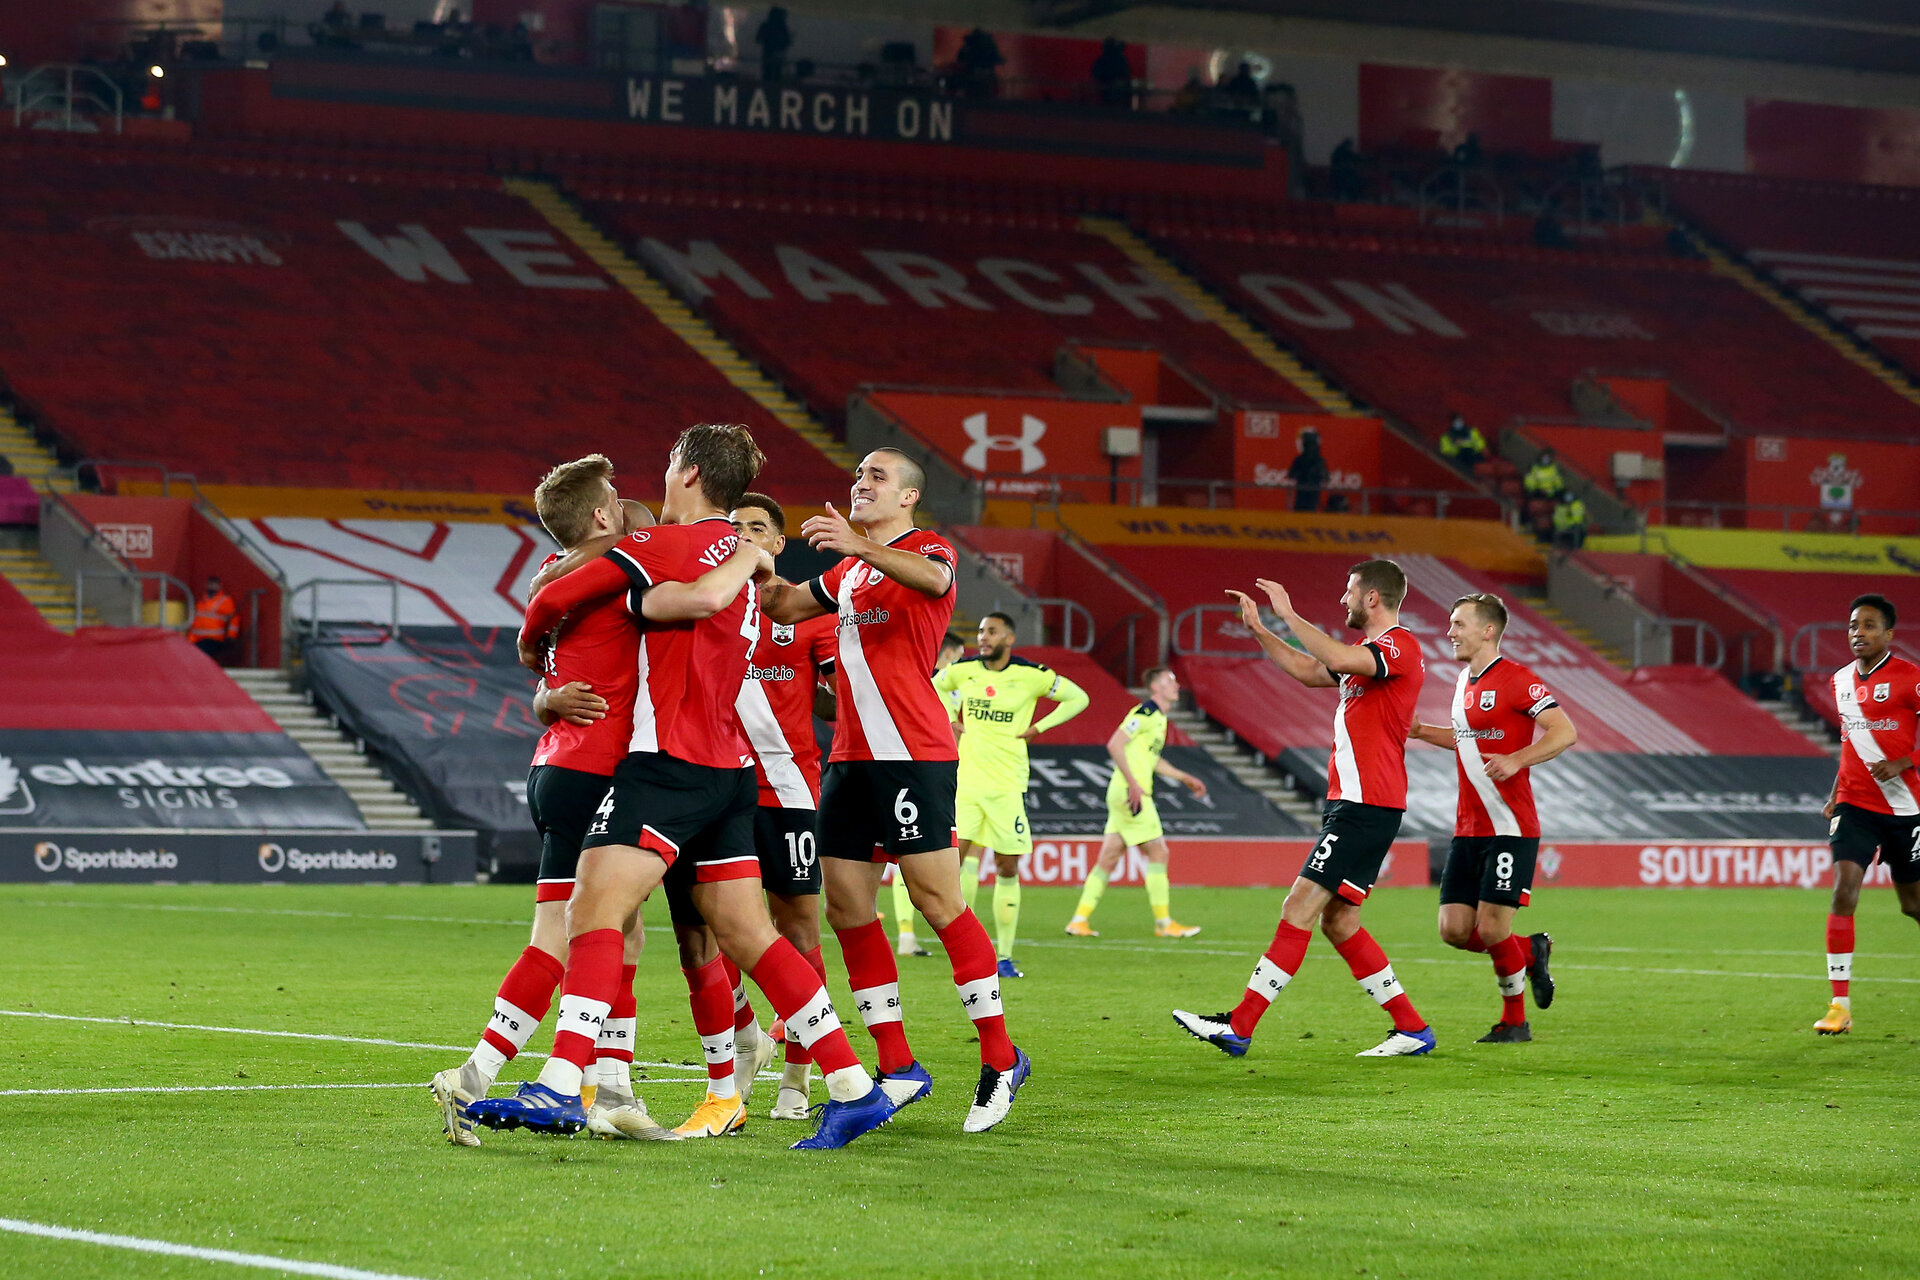 SOUTHAMPTON, ENGLAND - NOVEMBER 06: Southampton players celebrates Stuart Armstrong goal with him during the Premier League match between Southampton and Newcastle United at St Mary's Stadium on November 06, 2020 in Southampton, England. Sporting stadiums around the UK remain under strict restrictions due to the Coronavirus Pandemic as Government social distancing laws prohibit fans inside venues resulting in games being played behind closed doors. (Photo by Matt Watson/Southampton FC via Getty Images)